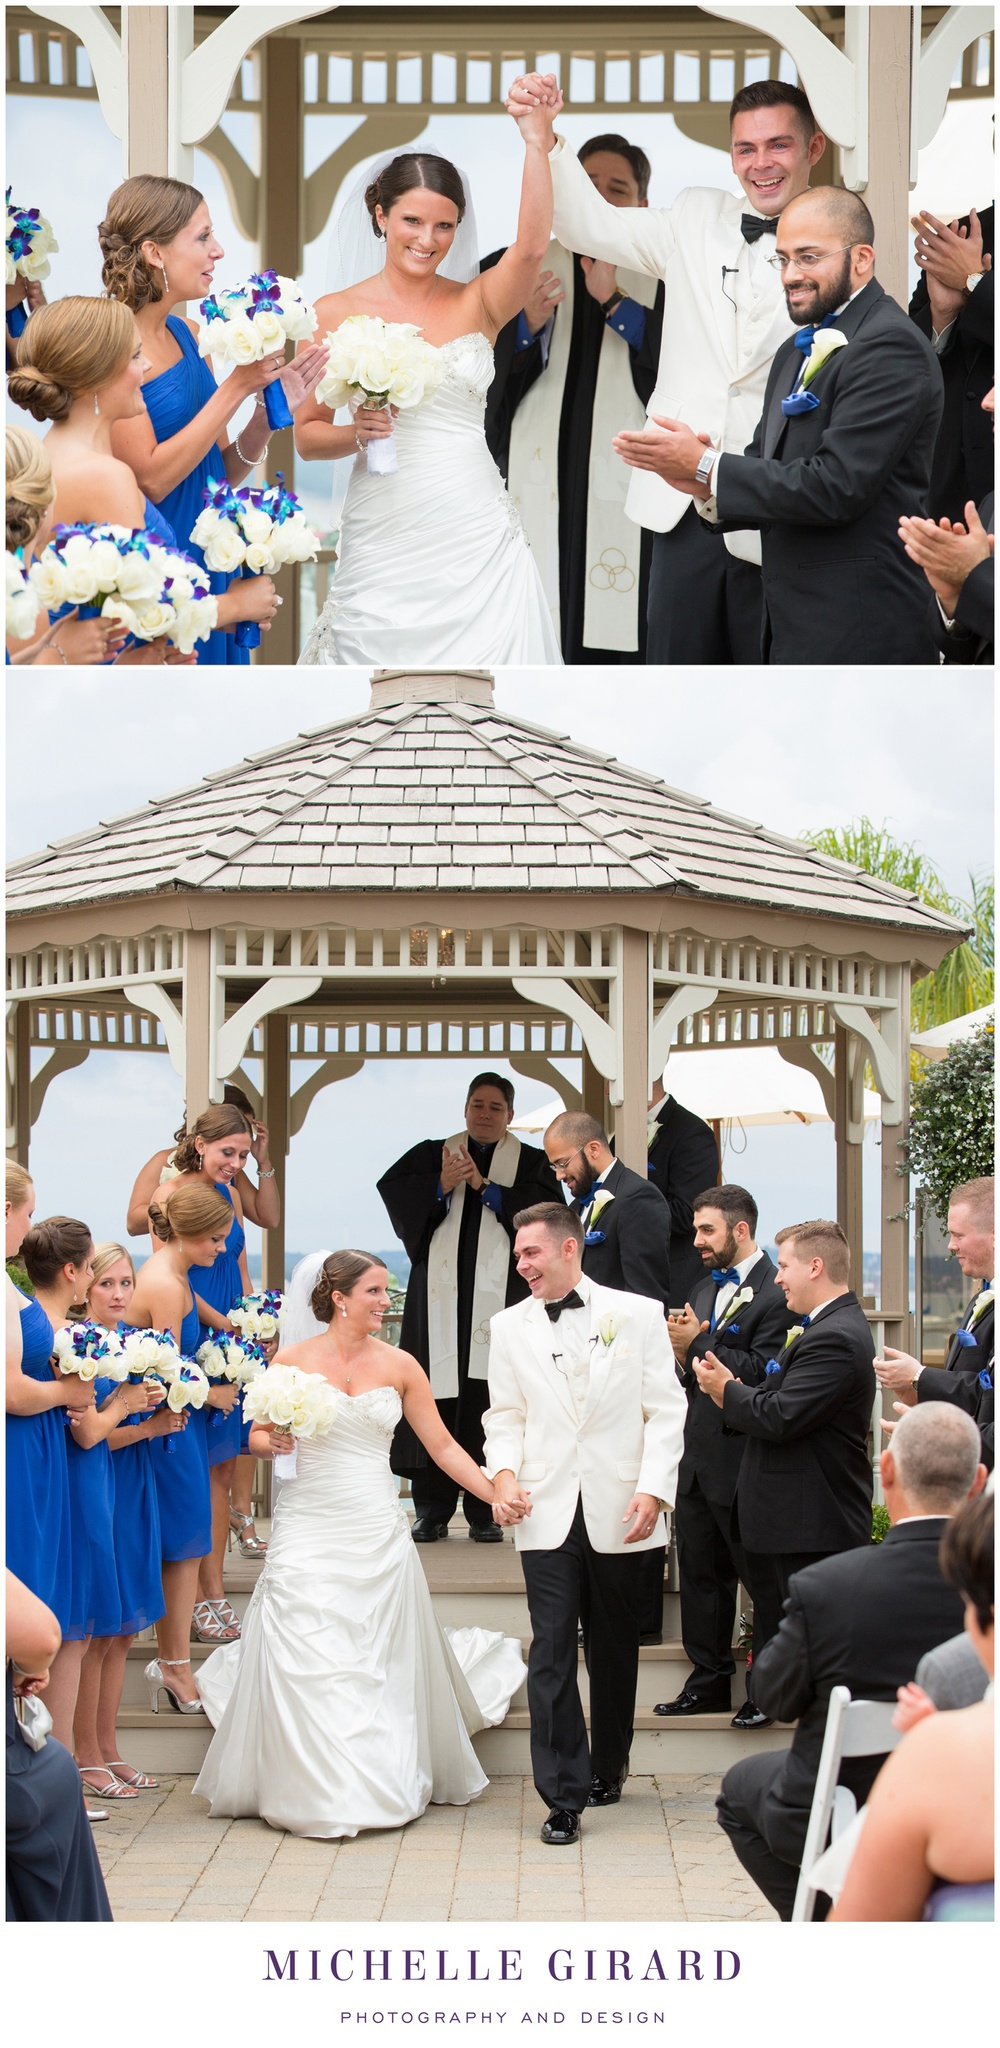 AnthonysOceanViewWedding_MichelleGirardPhotography09.jpg